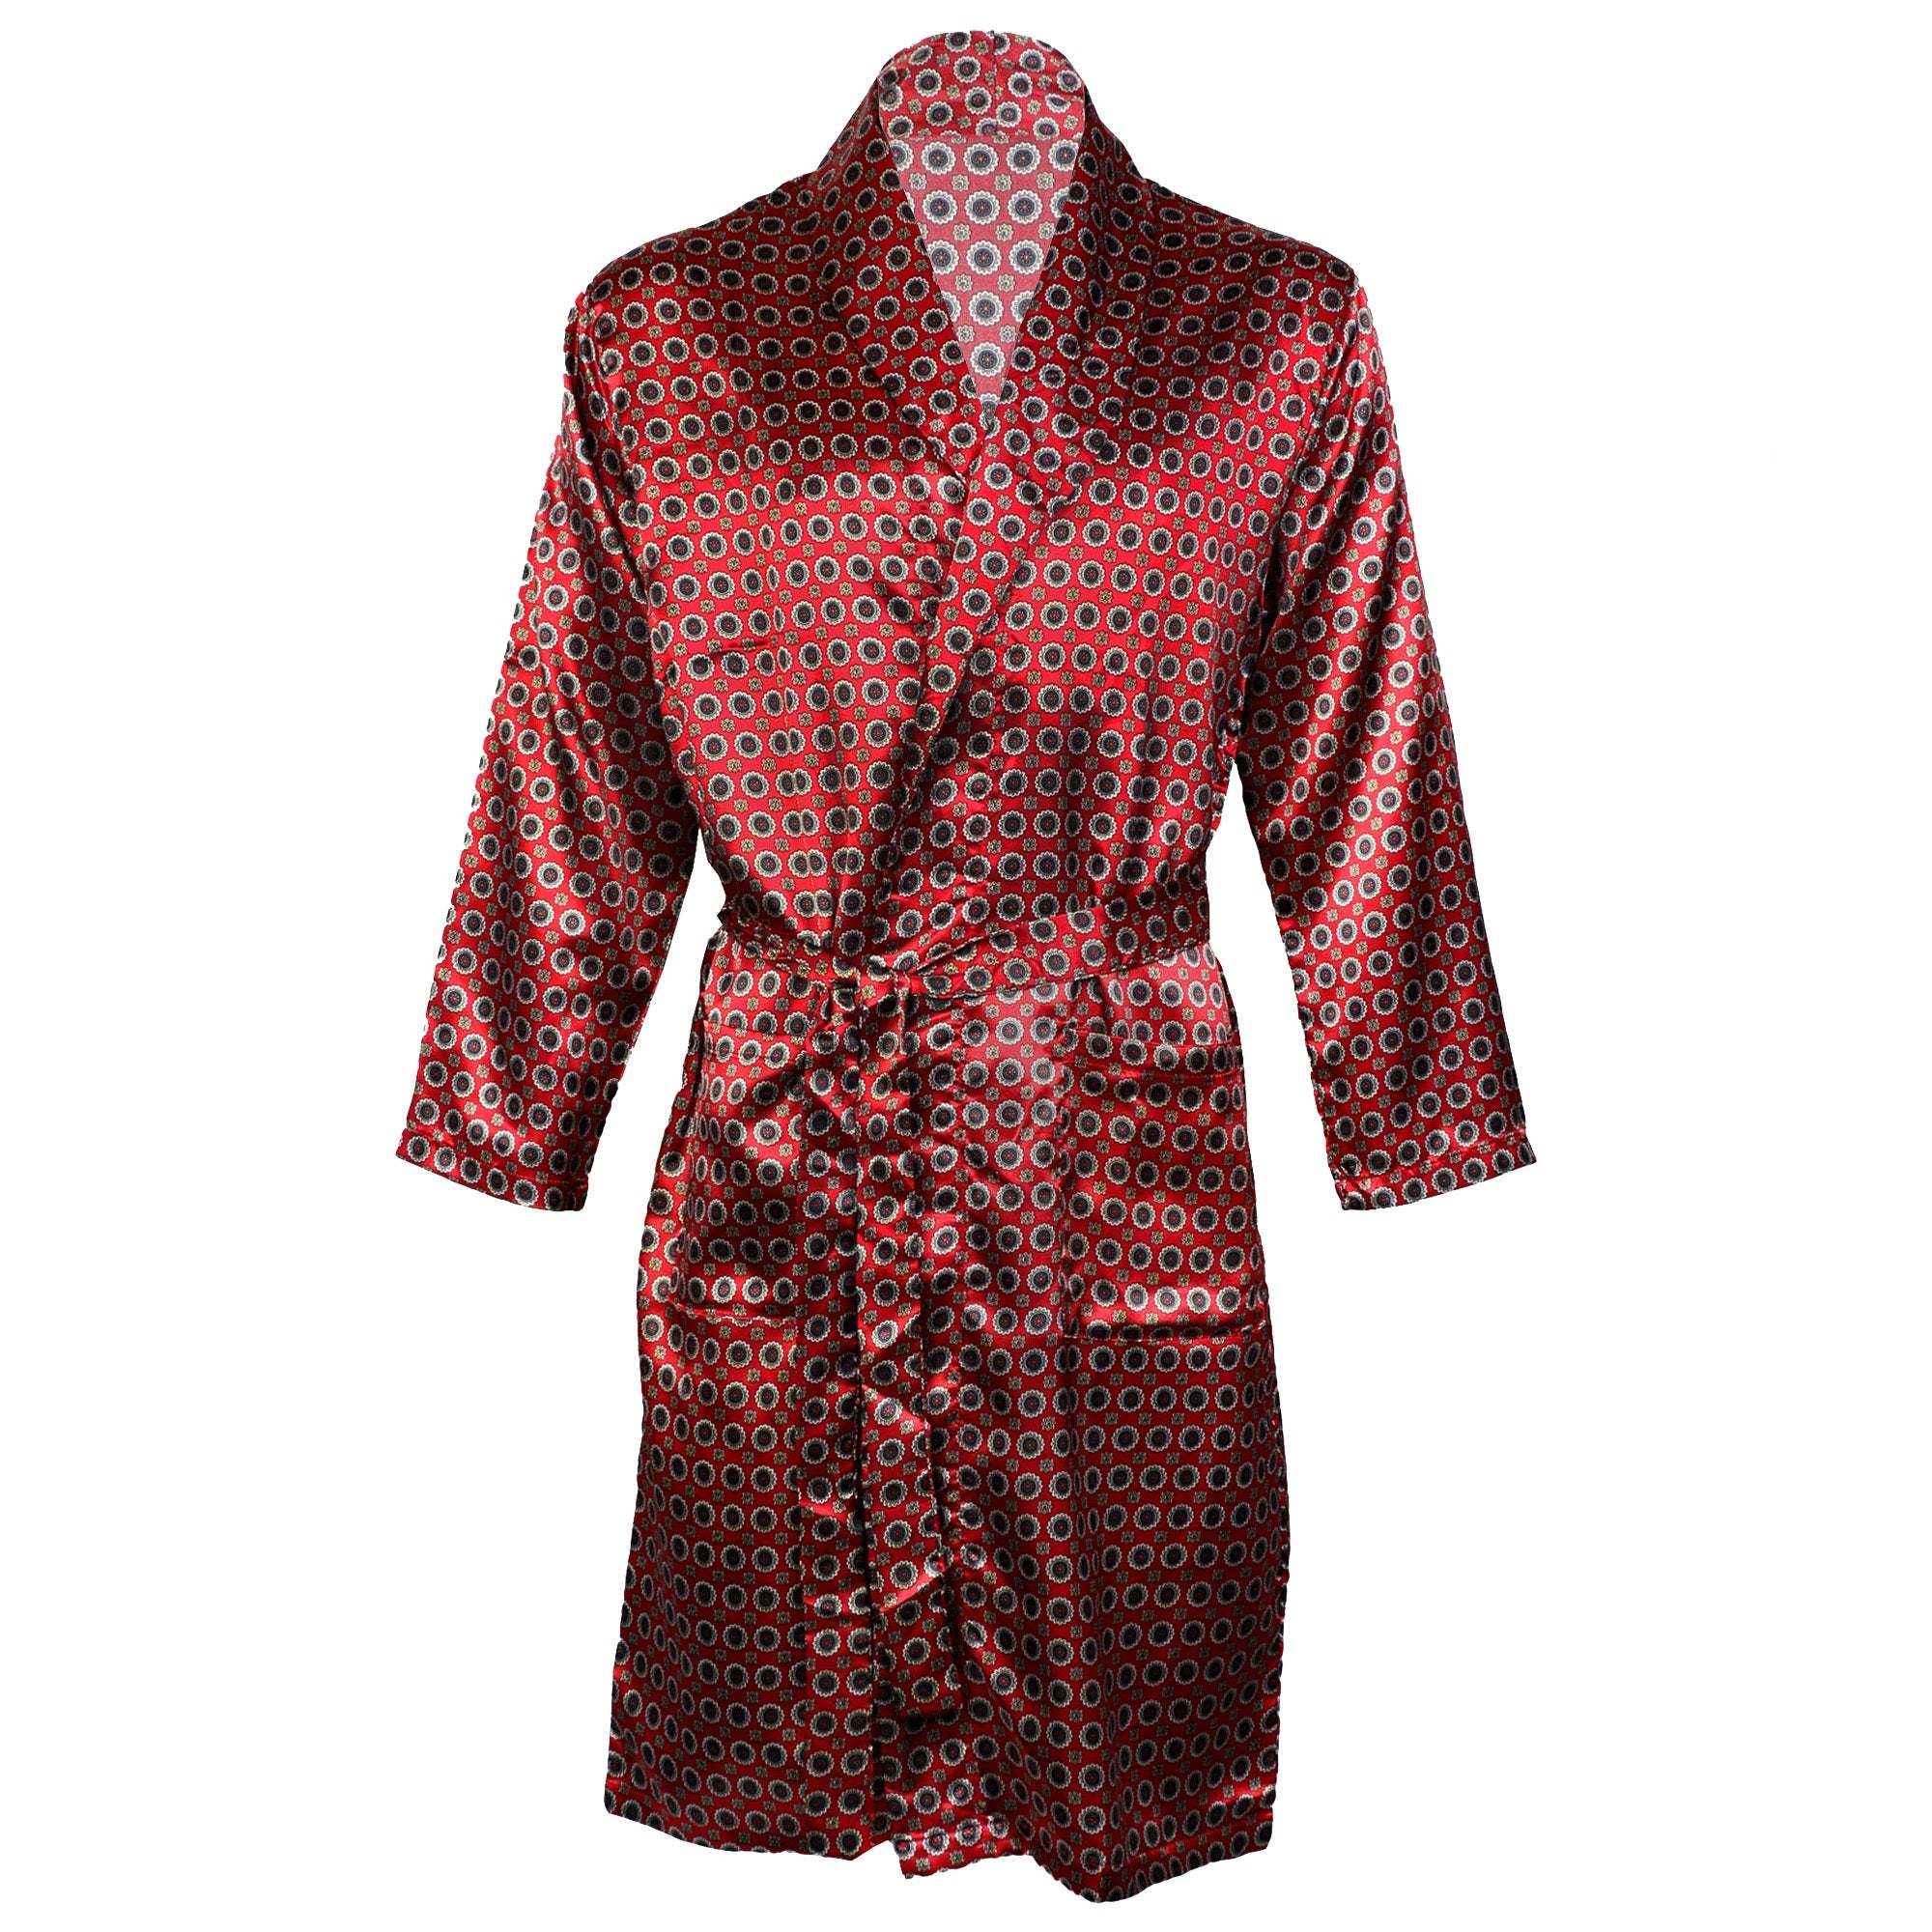 official shop coupon code search for latest OCTAVE Mens Luxury Summer Printed Satin Kimono Wrap / Robe / Dressing Gown